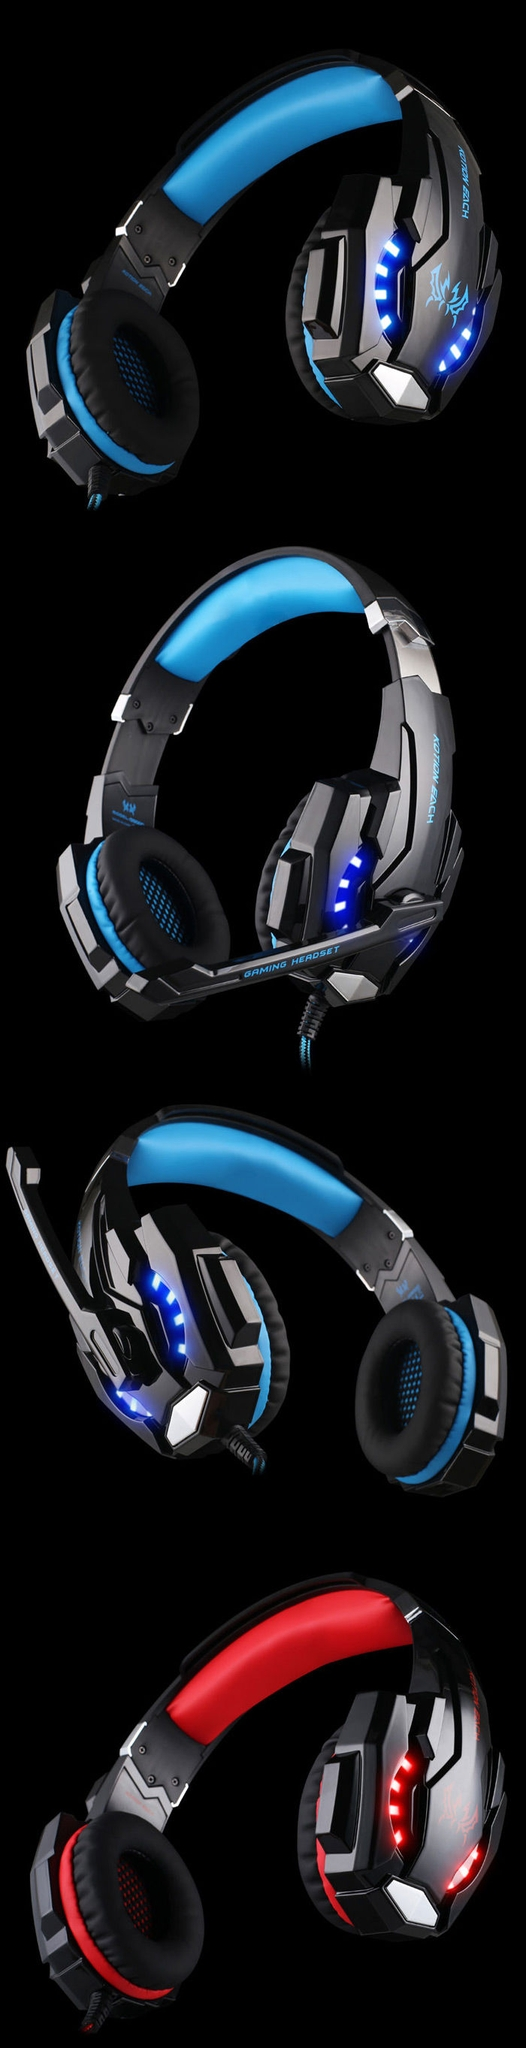 KOTION EACH G9000 Gaming Headphone 3.5mm Game Headset Headband for PS4 with Mic LED Light